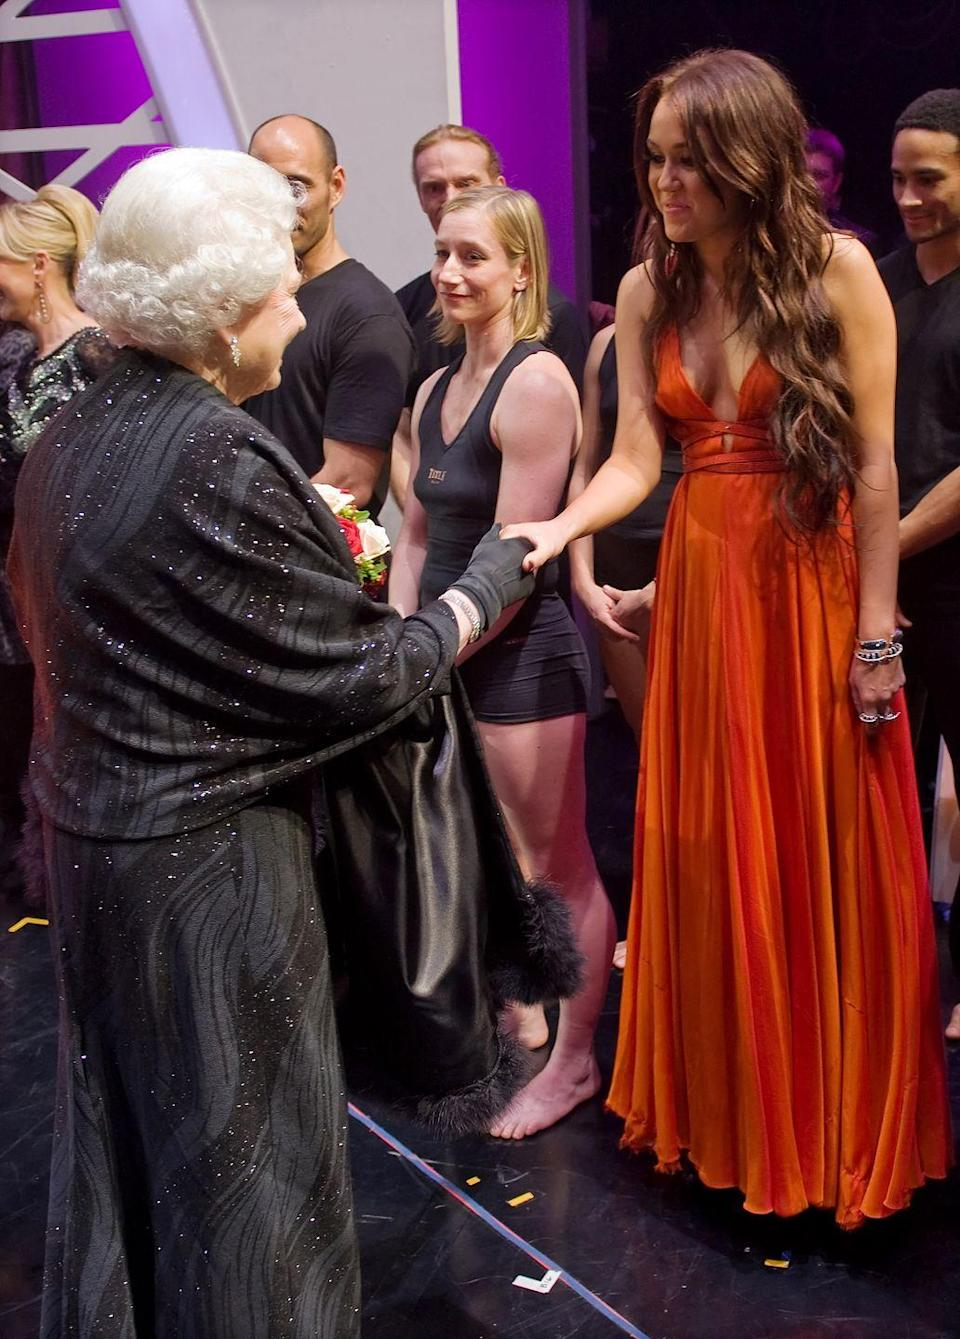 <p>Back in 2009, the Queen seemed to approve of the Miley Cyrus's burnt orange gown.</p>